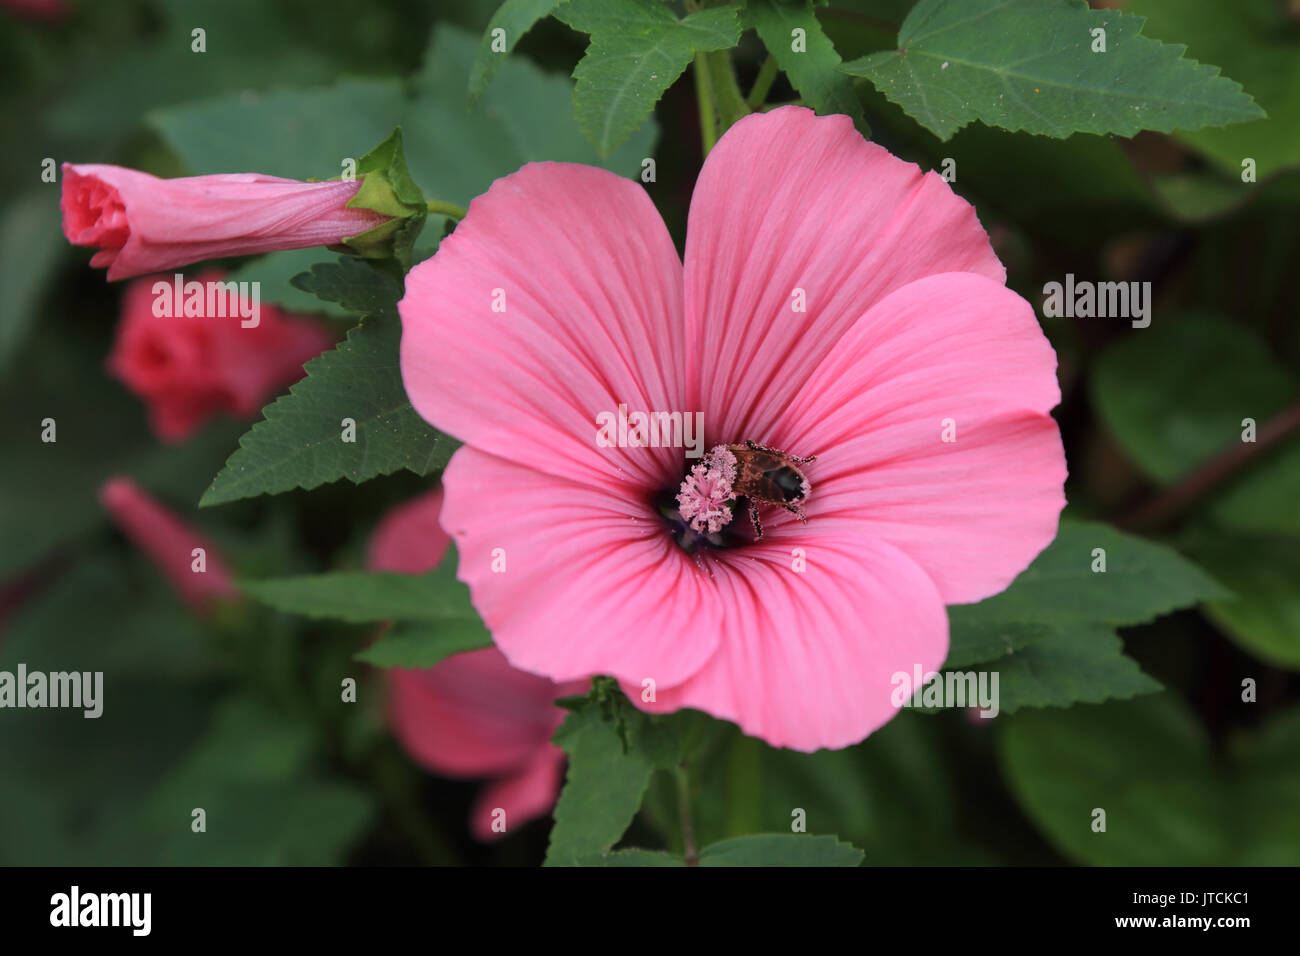 Pink trumpet flower with bee collecting pollen in jardin des plantes pink trumpet flower with bee collecting pollen in jardin des plantes amiens france mightylinksfo